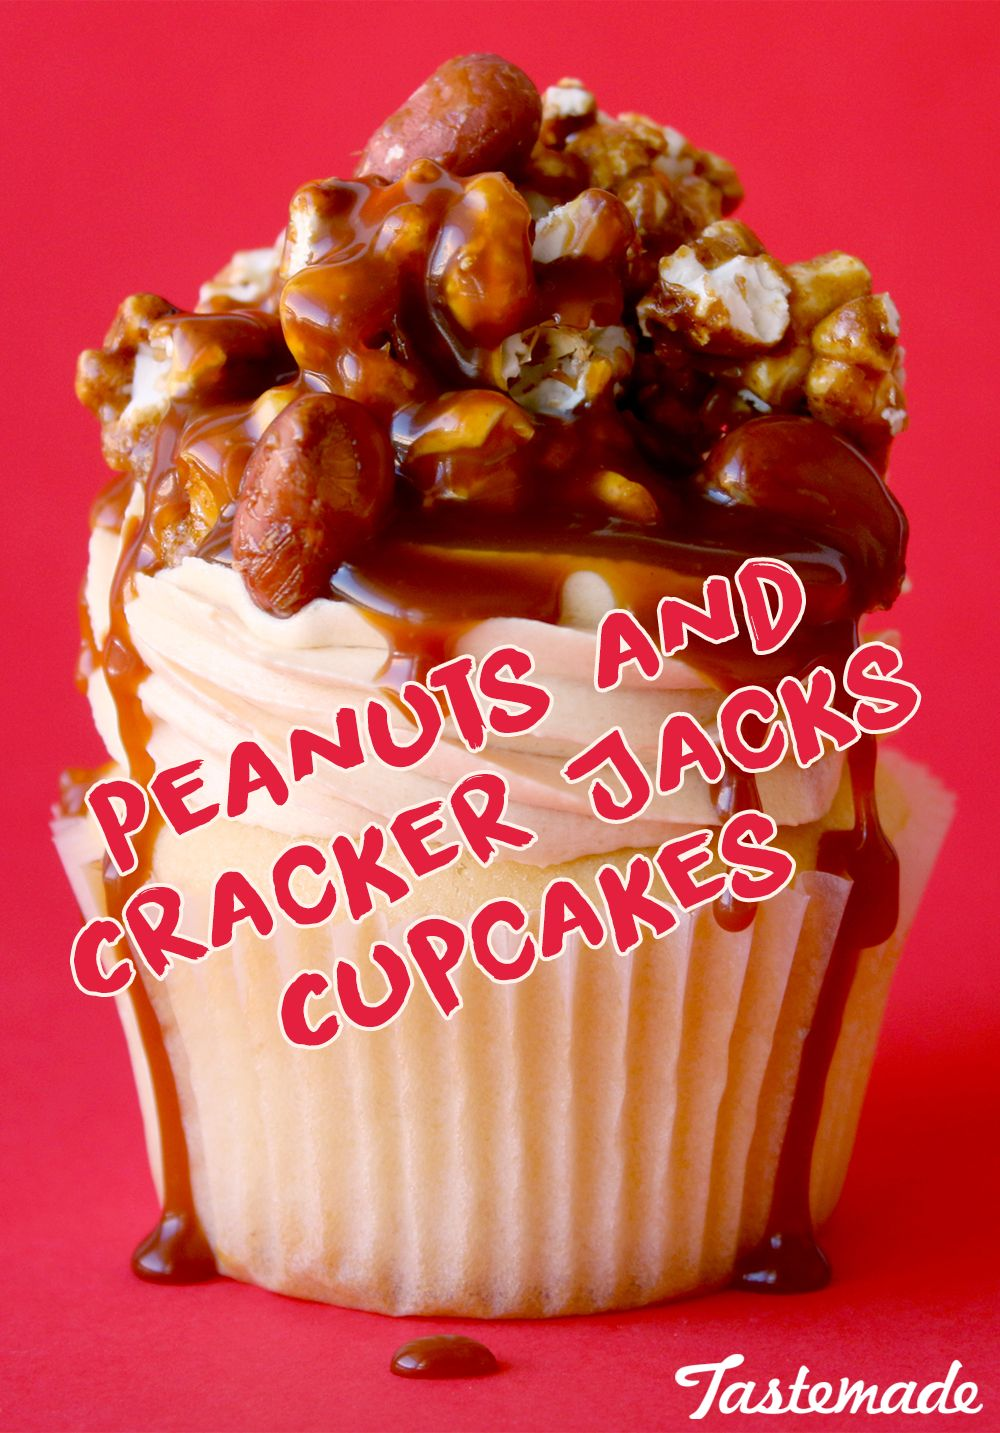 Peanuts And Crackerjack Cupcakes Recipe With Images Cupcake